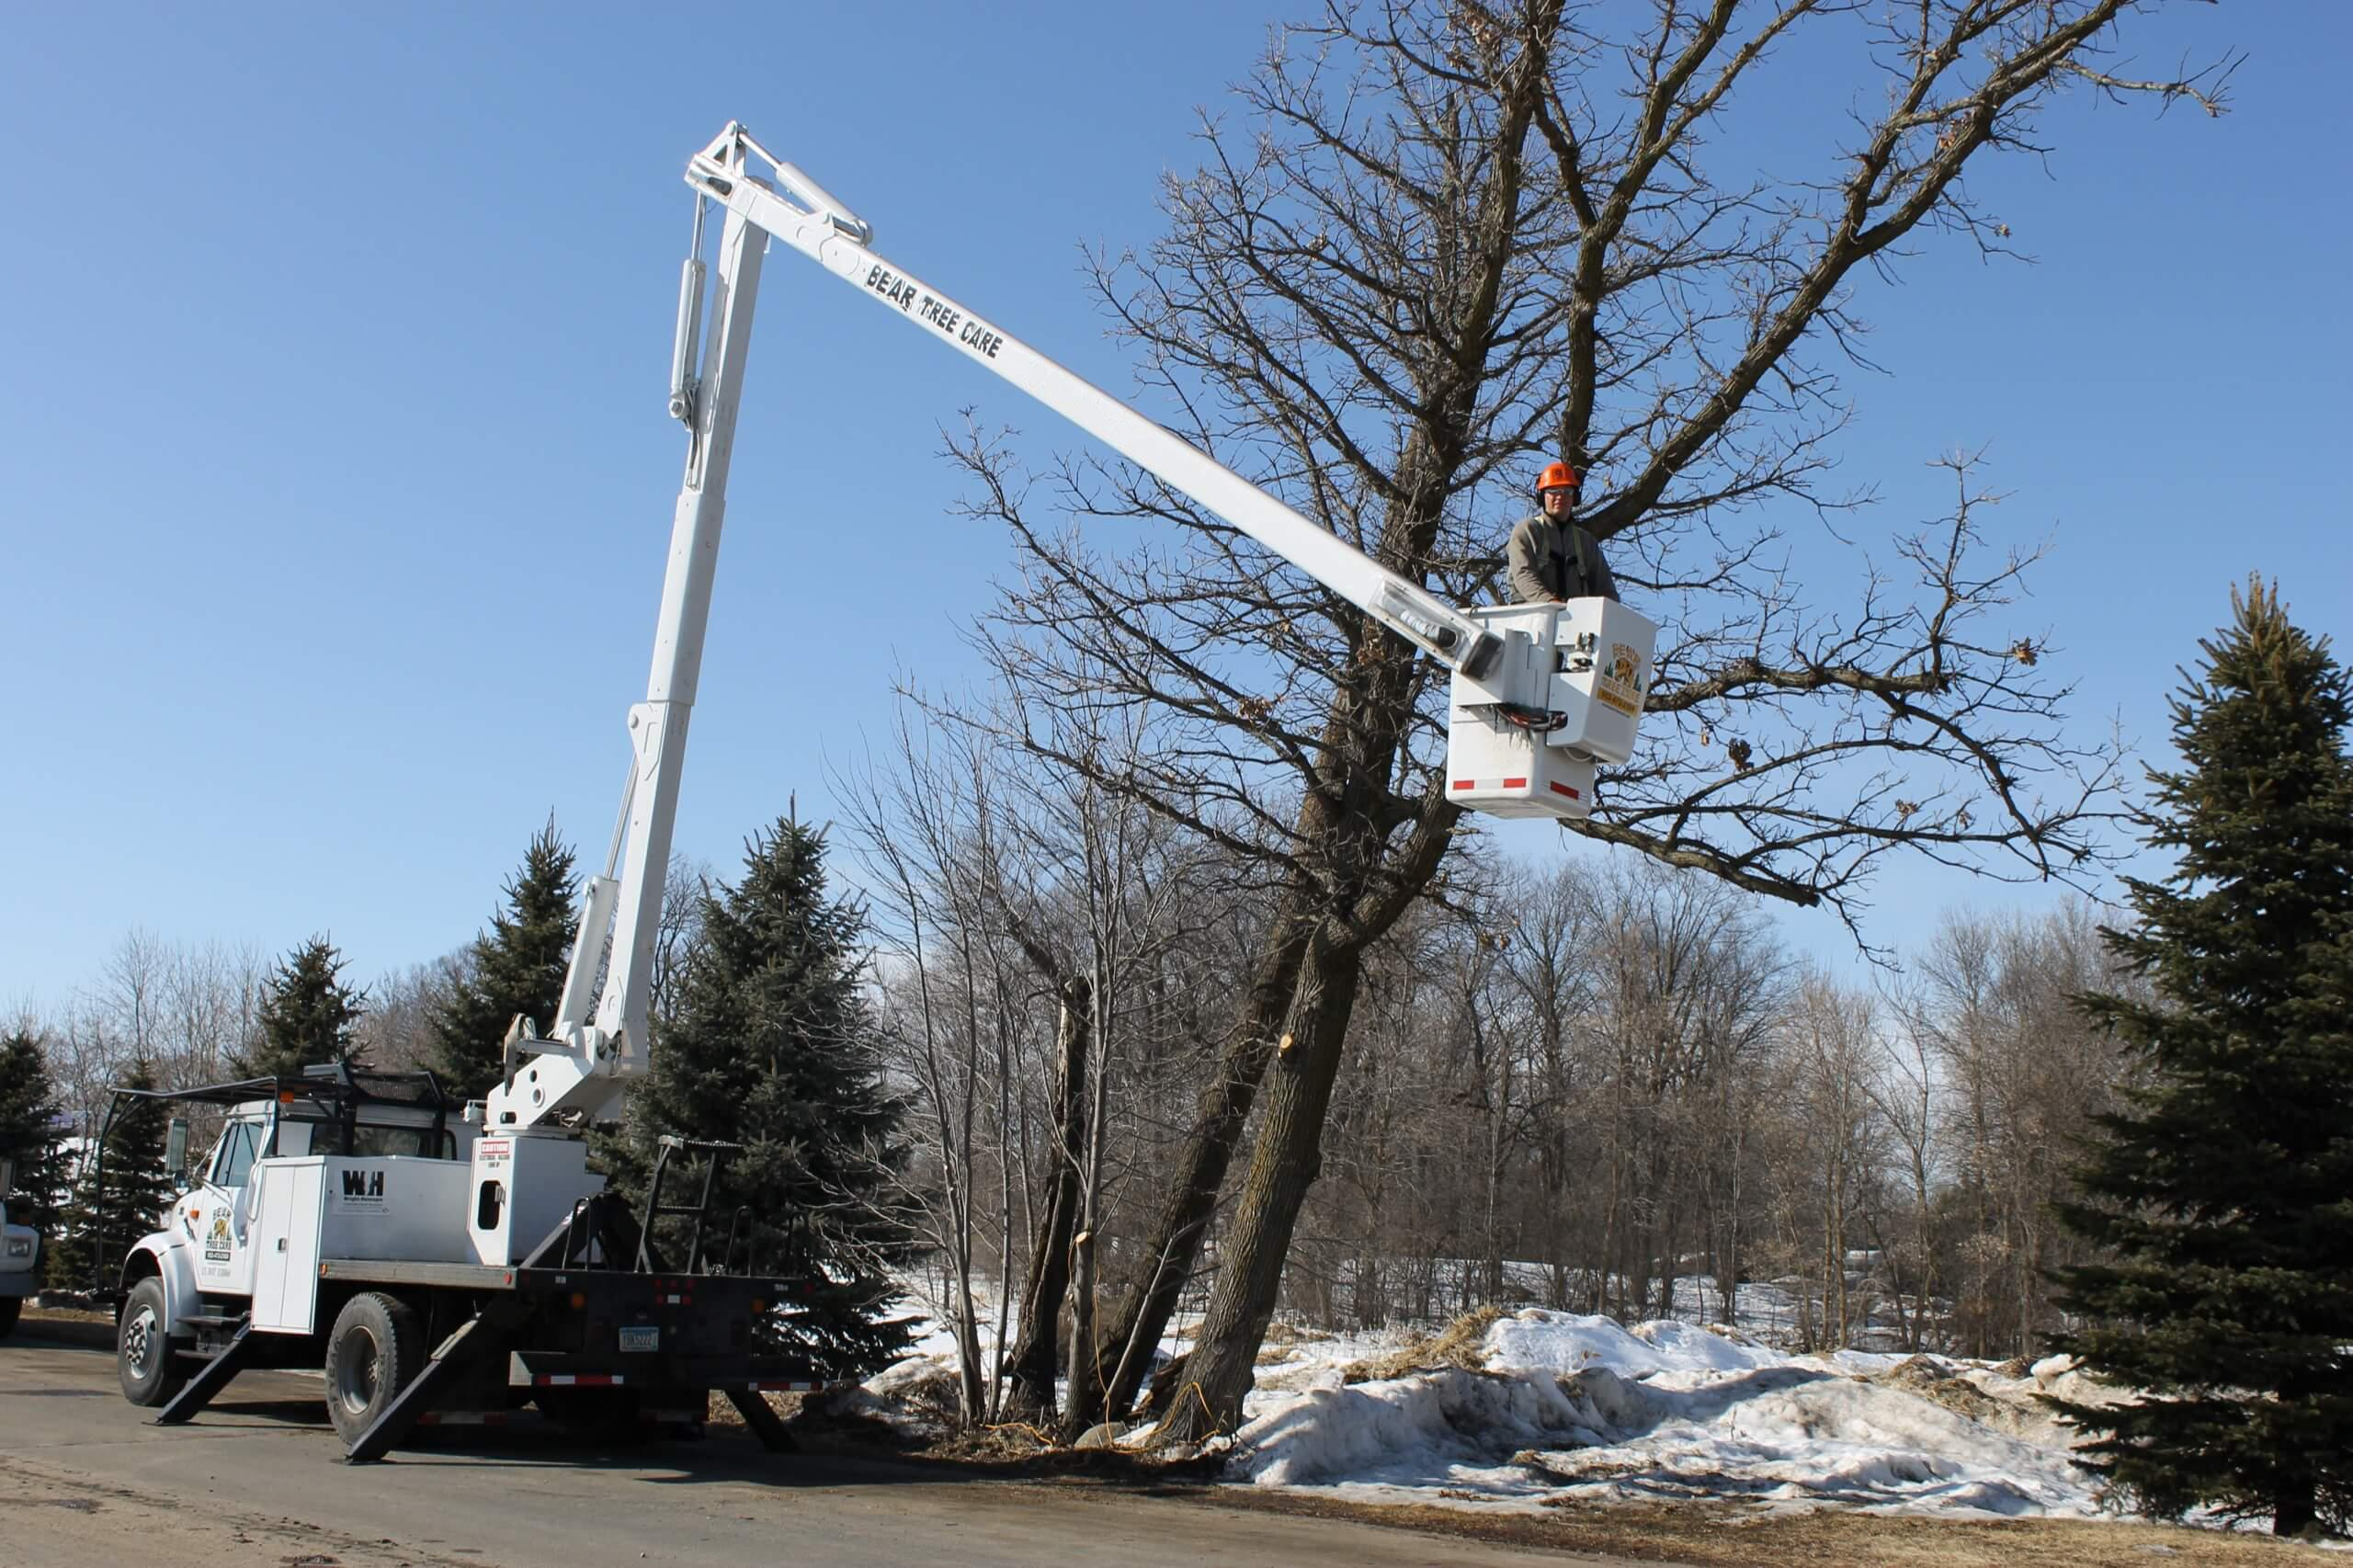 Wright-Hennepin Electric's employee uses aerial bucket to work on trees